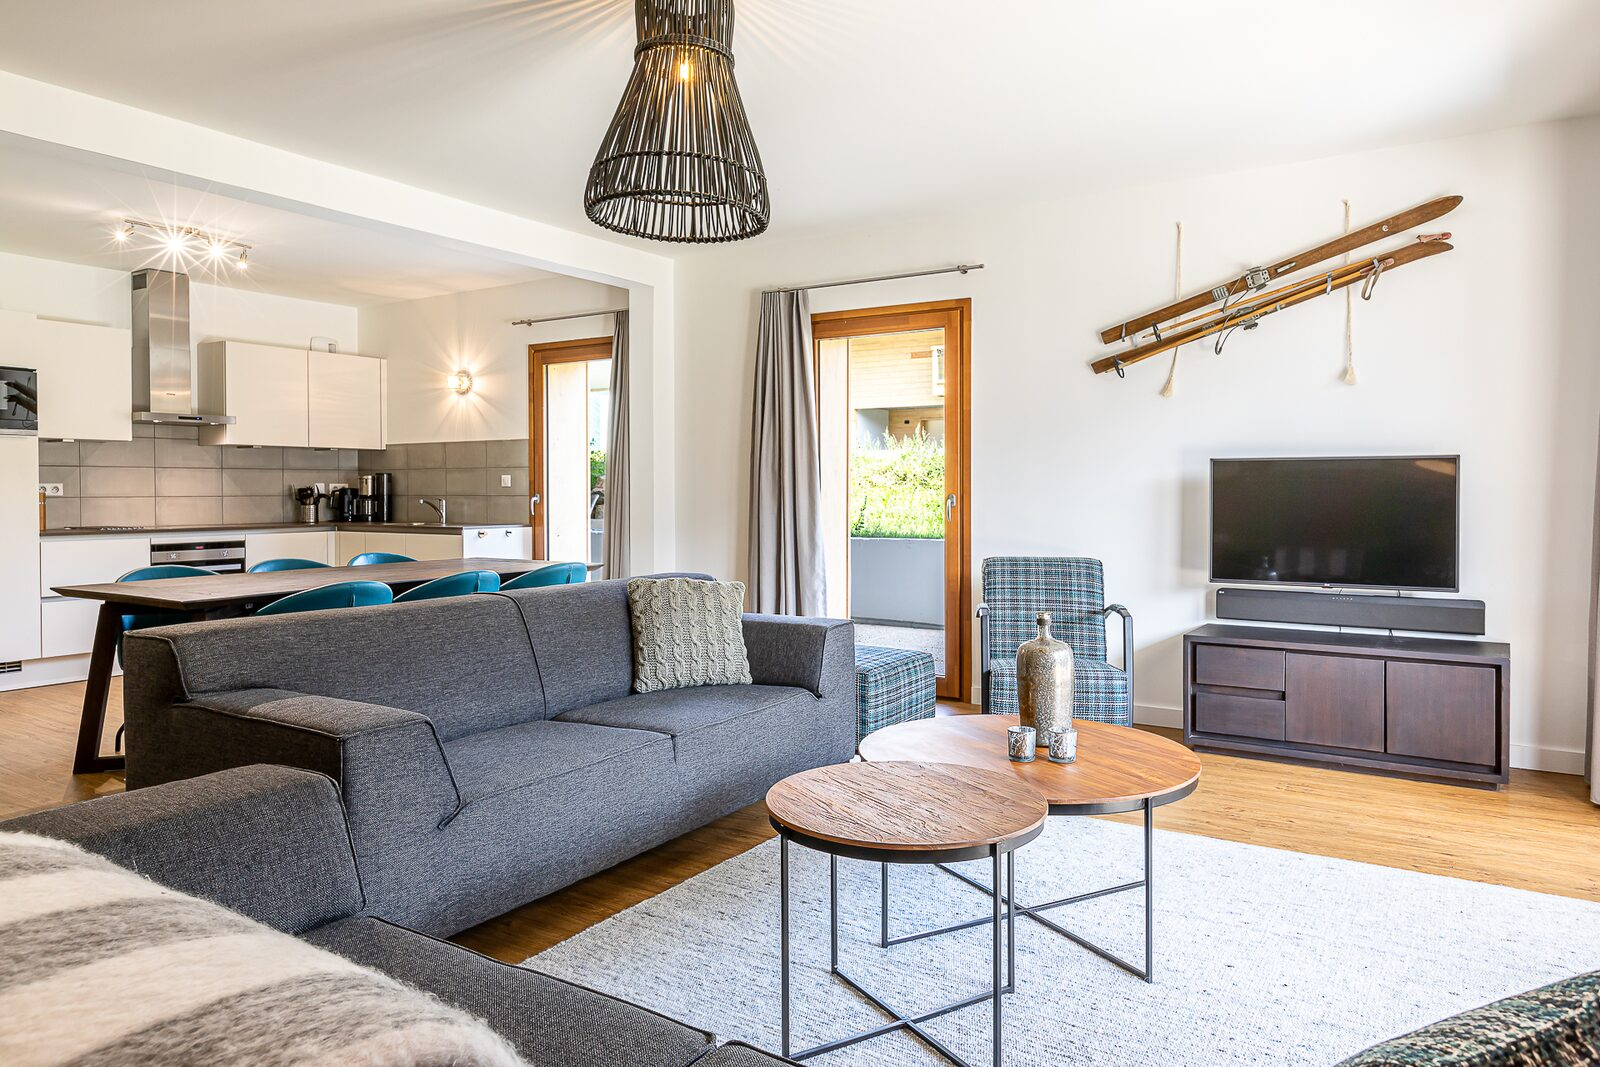 luxe-4-kamer-appartement-8-pers